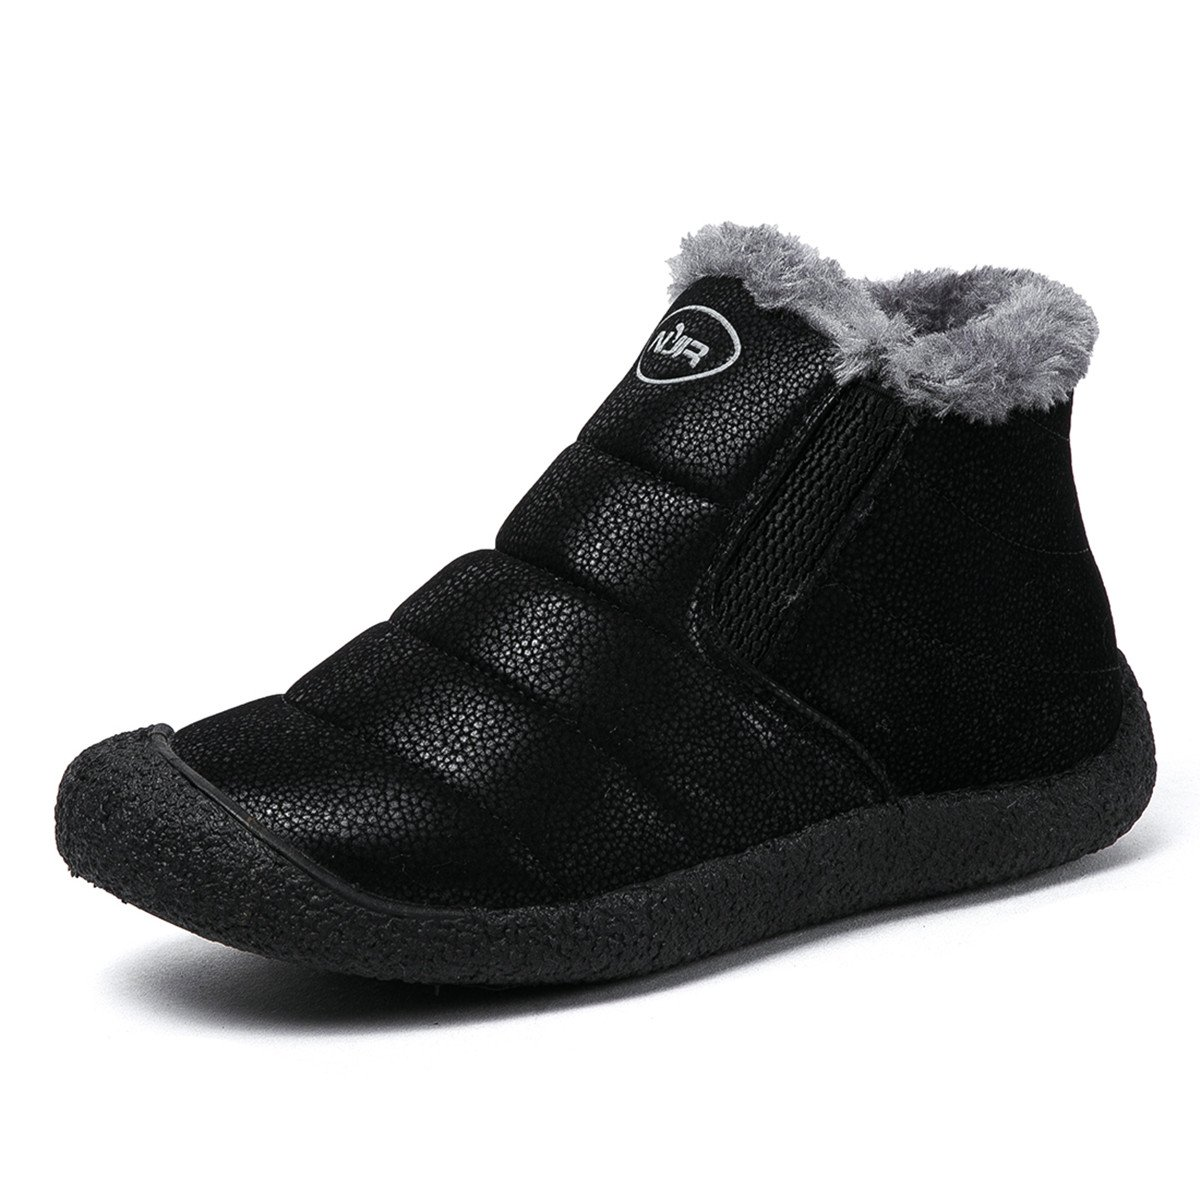 Gracosy Snow Boots, Winter Outdoor Slip On Ankle Snow Booties With Fur Lined, Unisex B075Z2Y94H Tag 41 Black